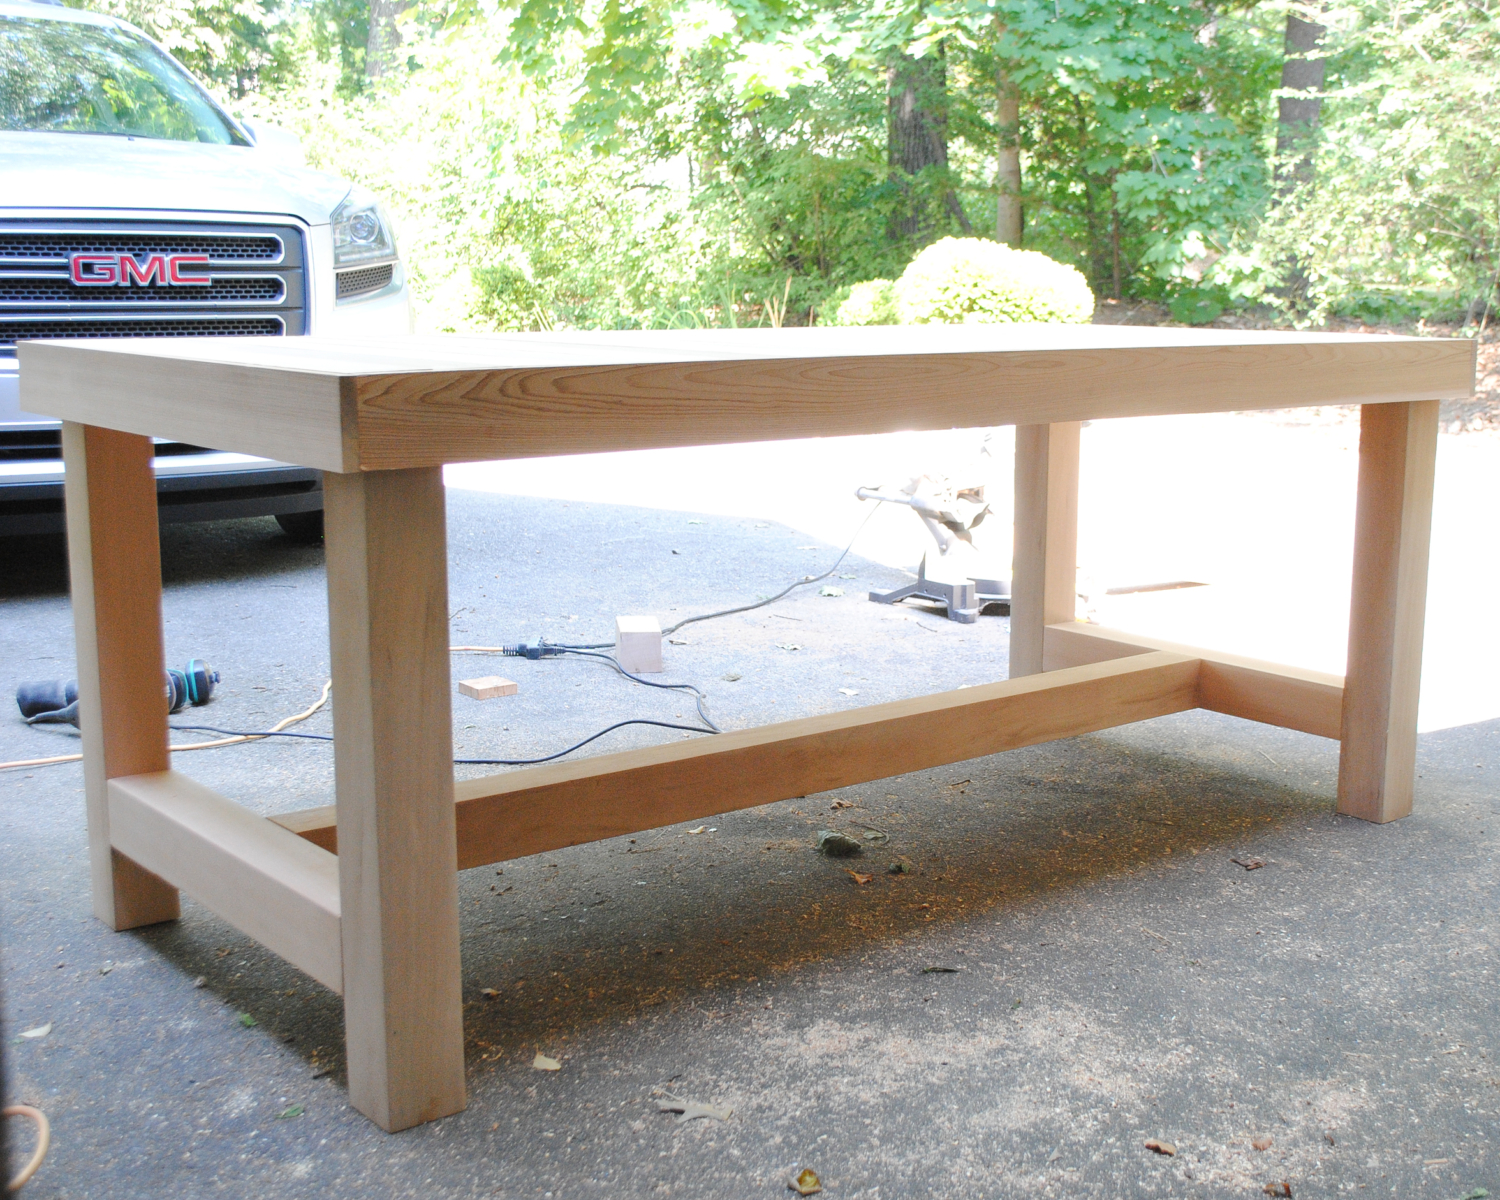 Free building plans for this DIY chunky farmhouse table. Modeled after a Restoration Hardware dining table but thousands of dollars less and really simple to build!